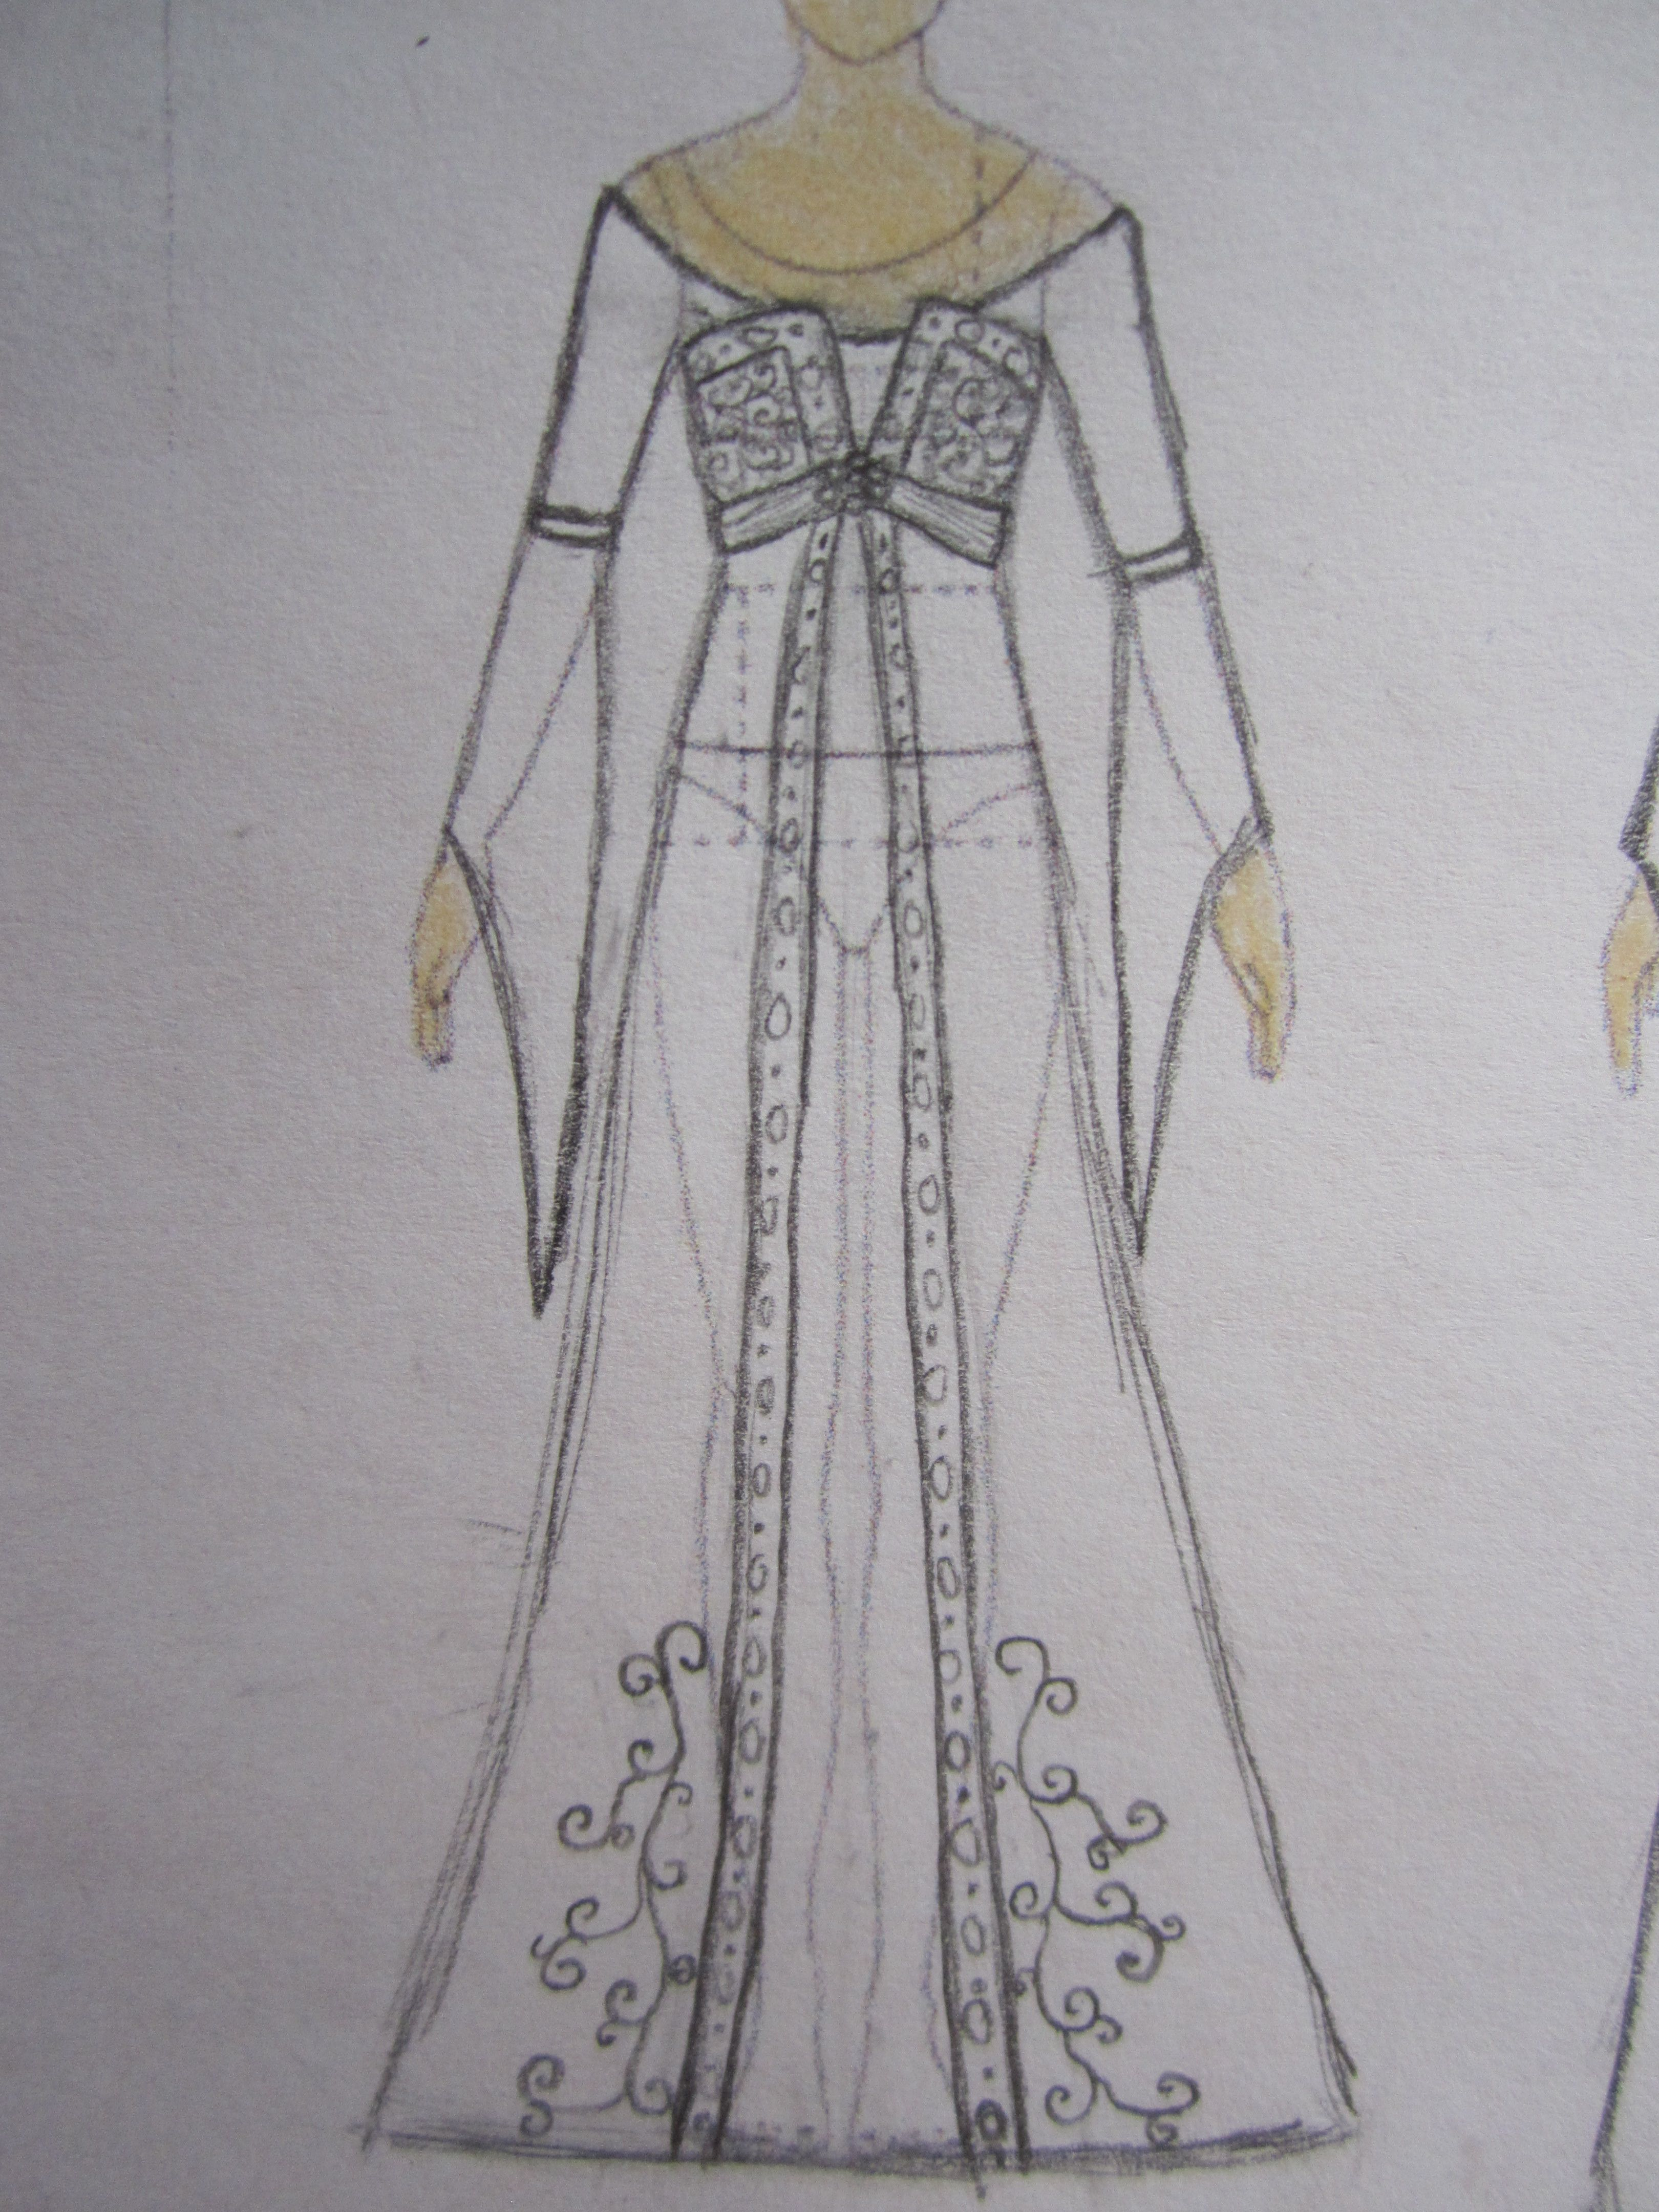 Medievalinspired wedding dress sketched by abigail gibson